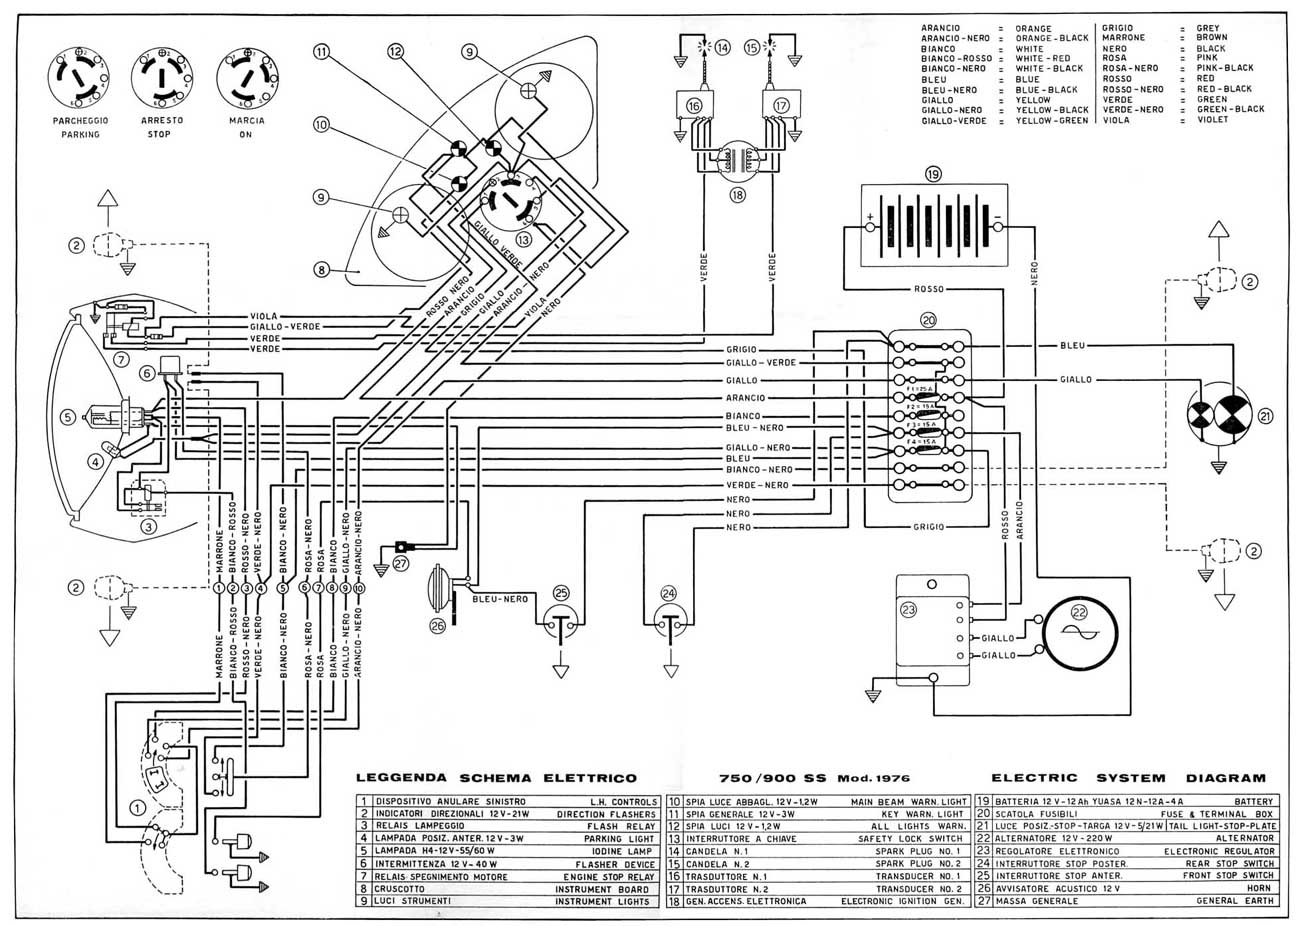 76_750900ss_wiring 1979 900ss wiring loom layout anybody? ducati ms the ultimate ducati wiring diagram at edmiracle.co